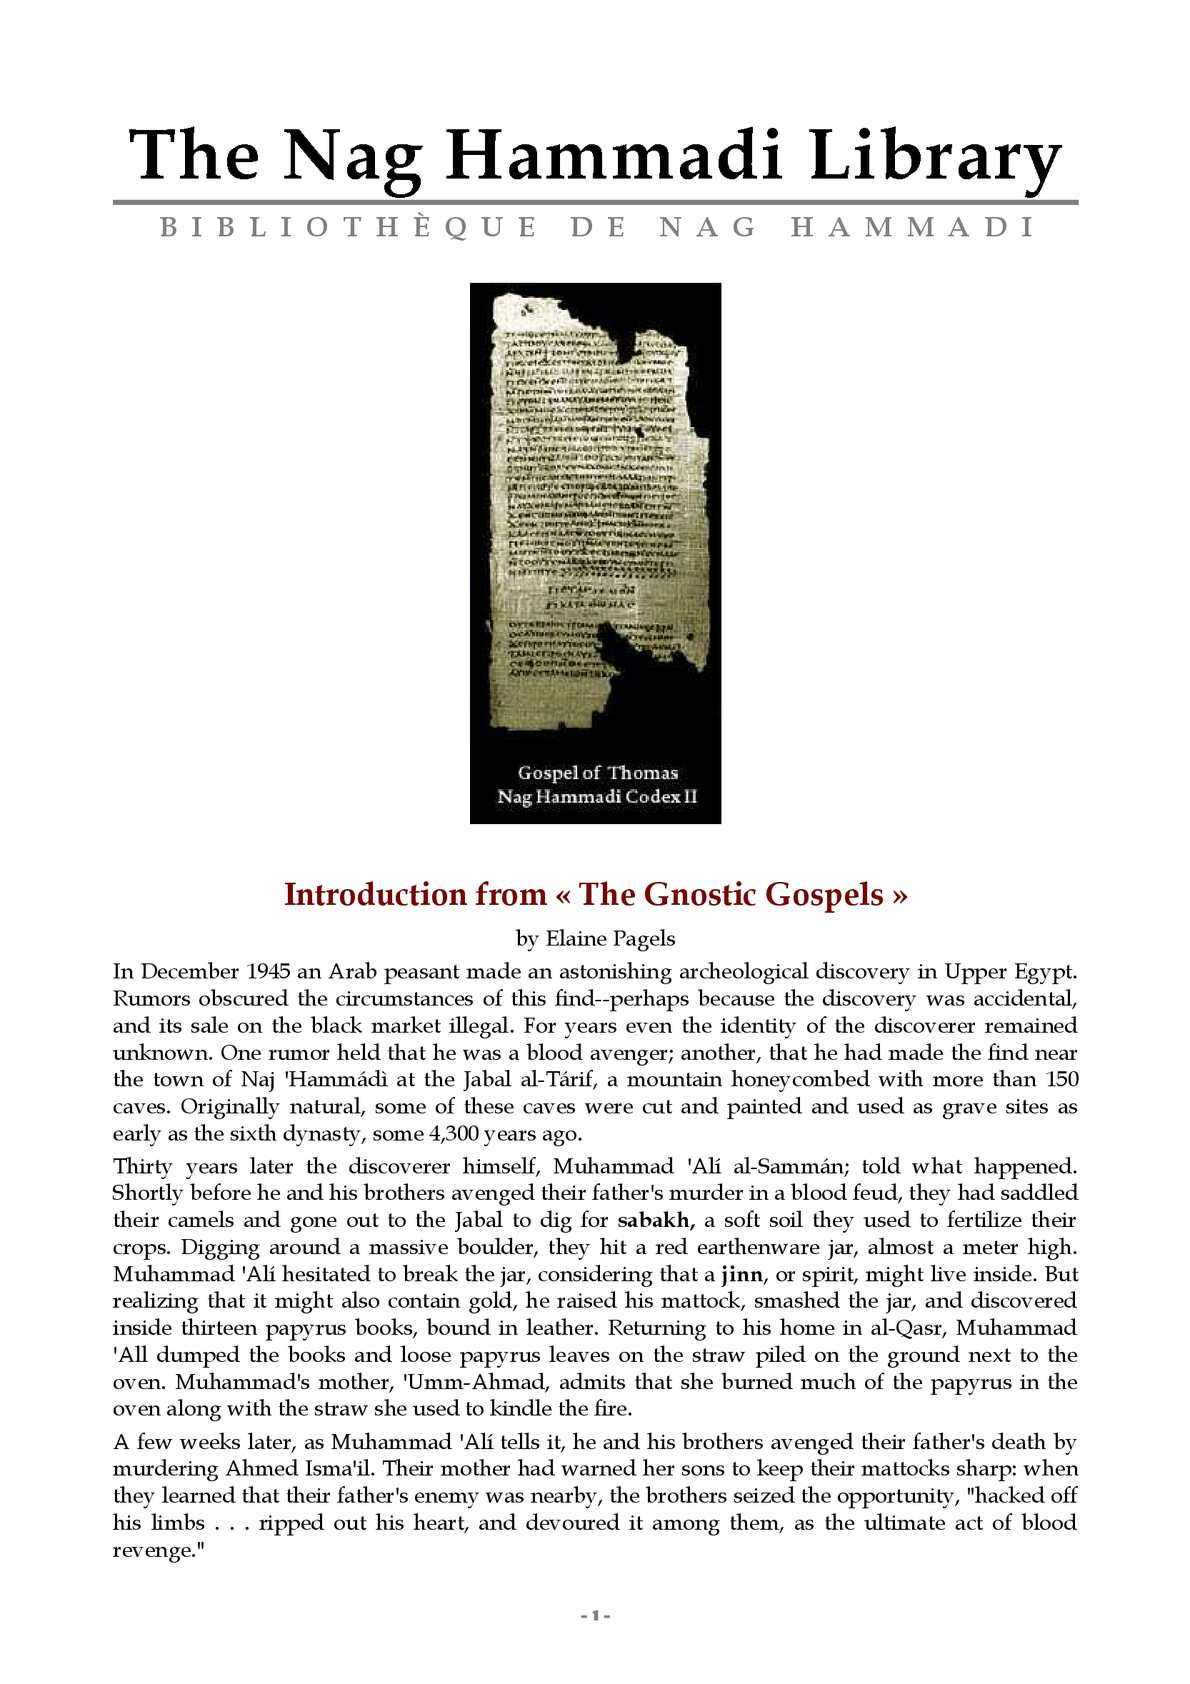 the nag hammadi codices essay The essays situate the nag hammadi codices and their texts in the context of late antique egypt, treating such topics as.